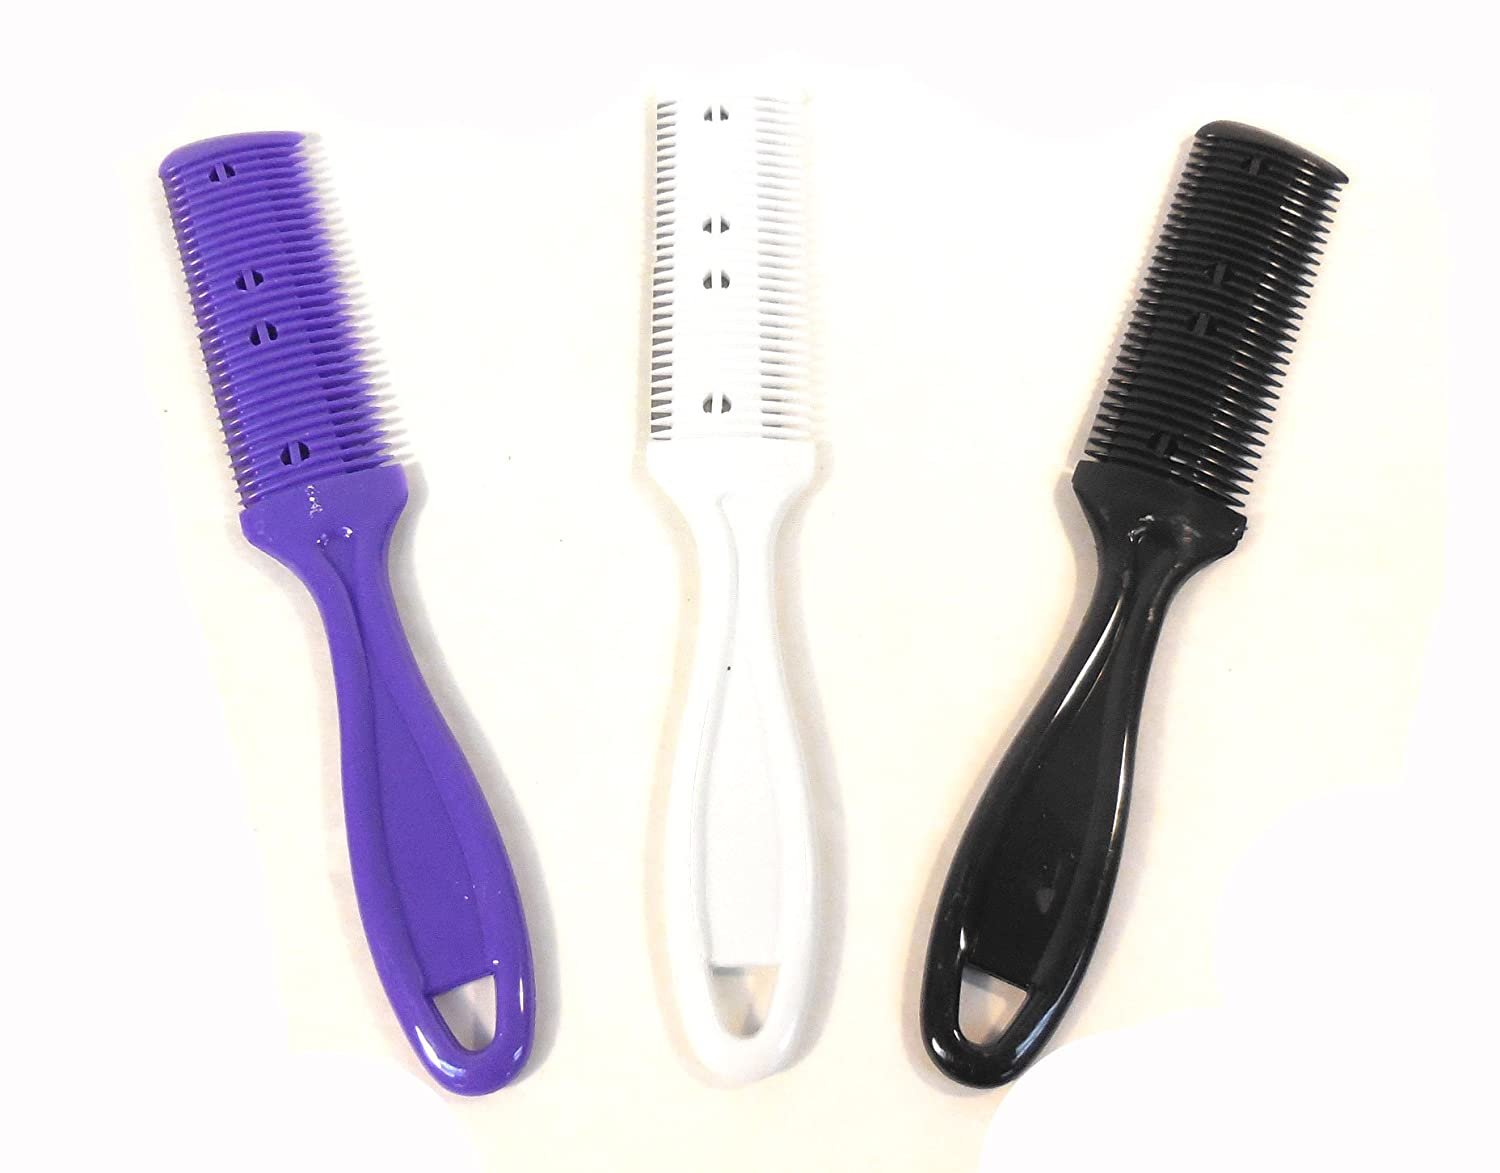 CALA Professional Quality Razor Hair Comb (Model: 70-725B), Assorted Colors Brittny' s